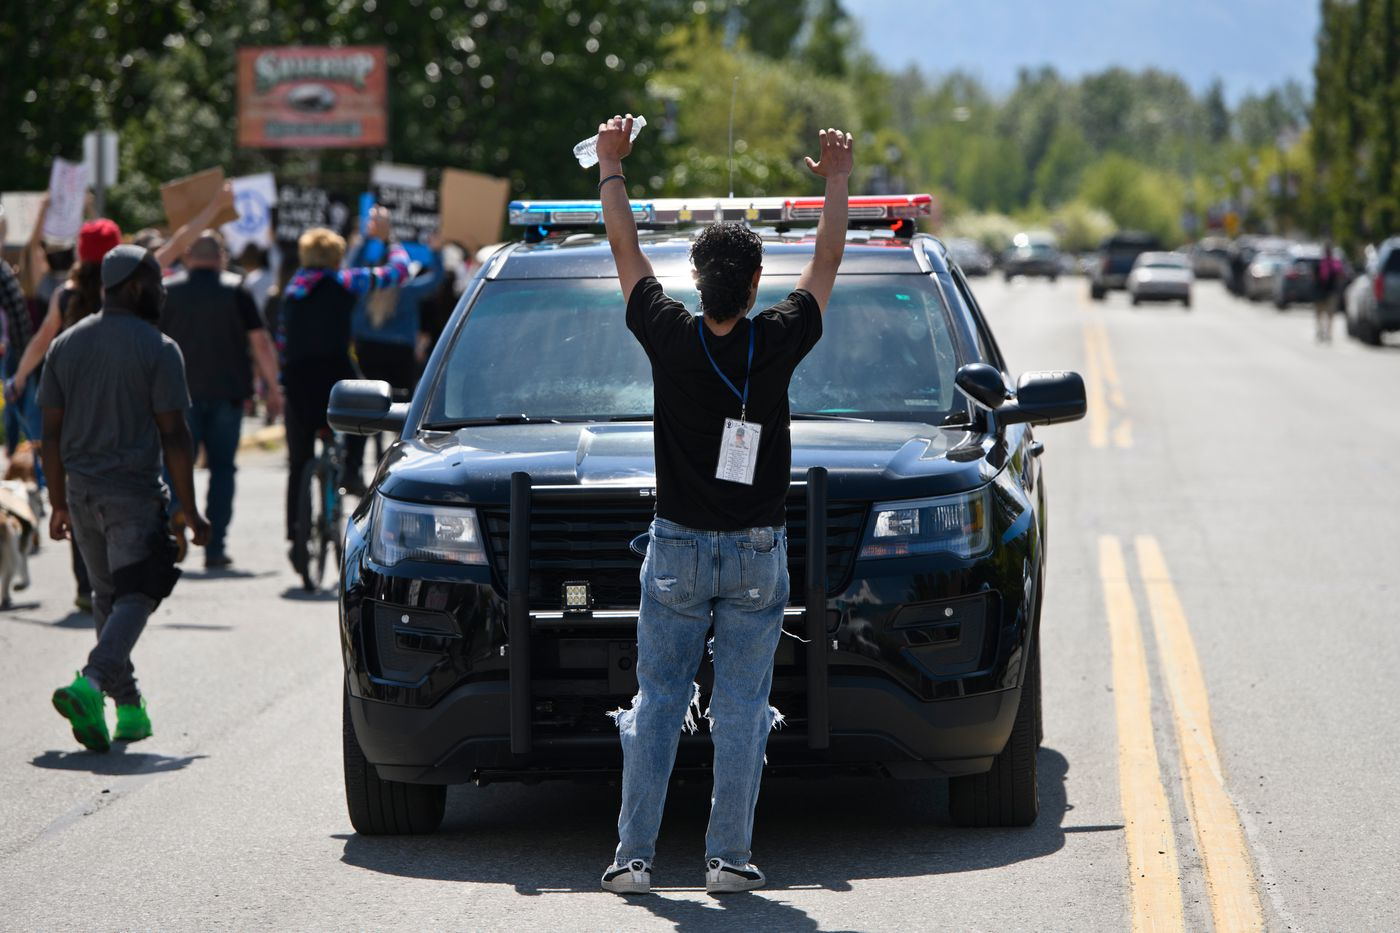 A protester momentarily pauses a Palmer Police vehicle as the march is in progress. A large crowd gathered and marched through Palmer to protest racism and police brutality on Saturday, June 6, 2020. (Marc Lester / ADN)